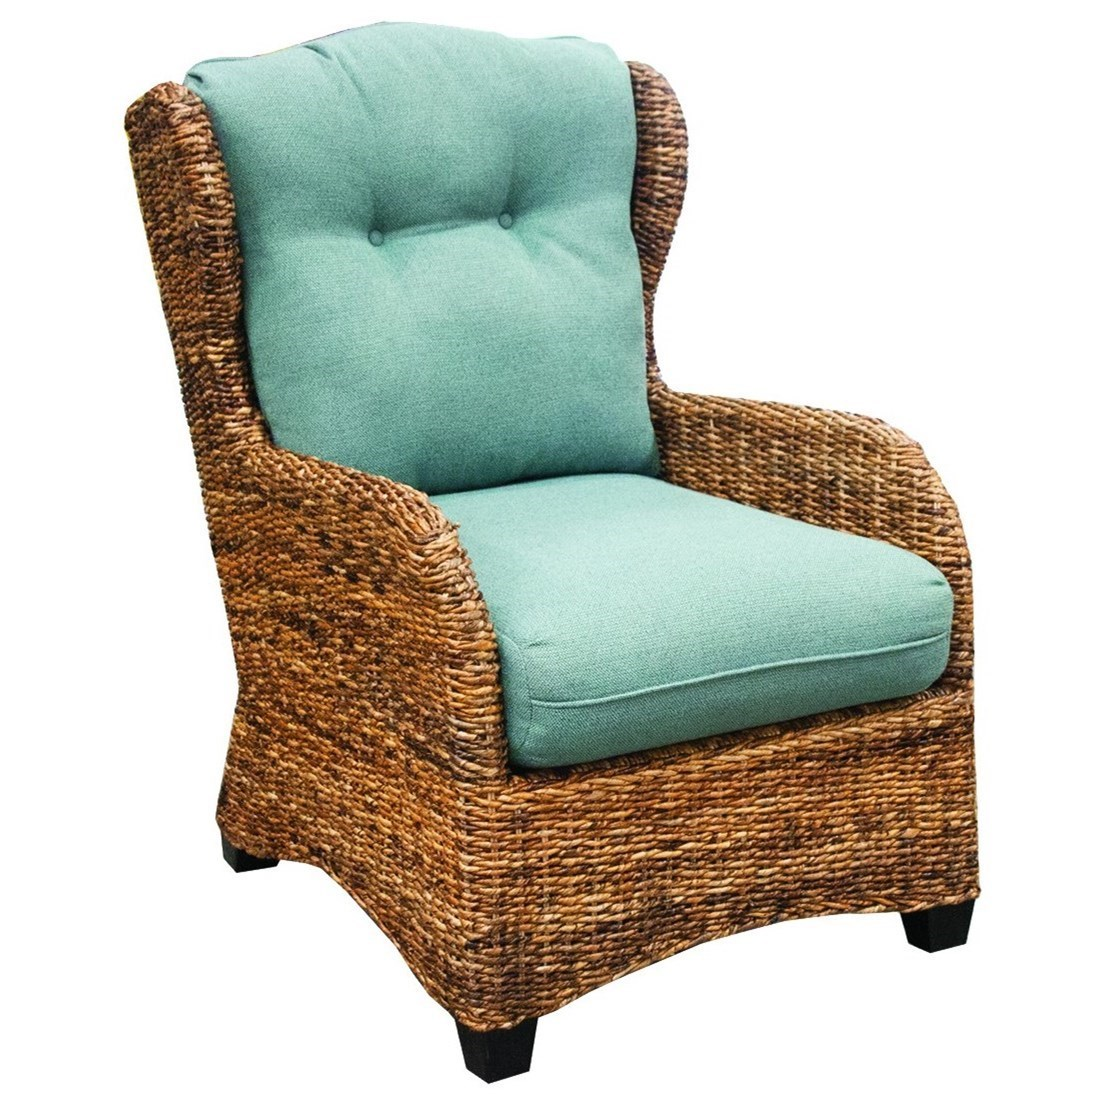 Rattan Lounge Chair Philippines Capris Furniture Chairs And Ottomans Wicker Occasional Chair